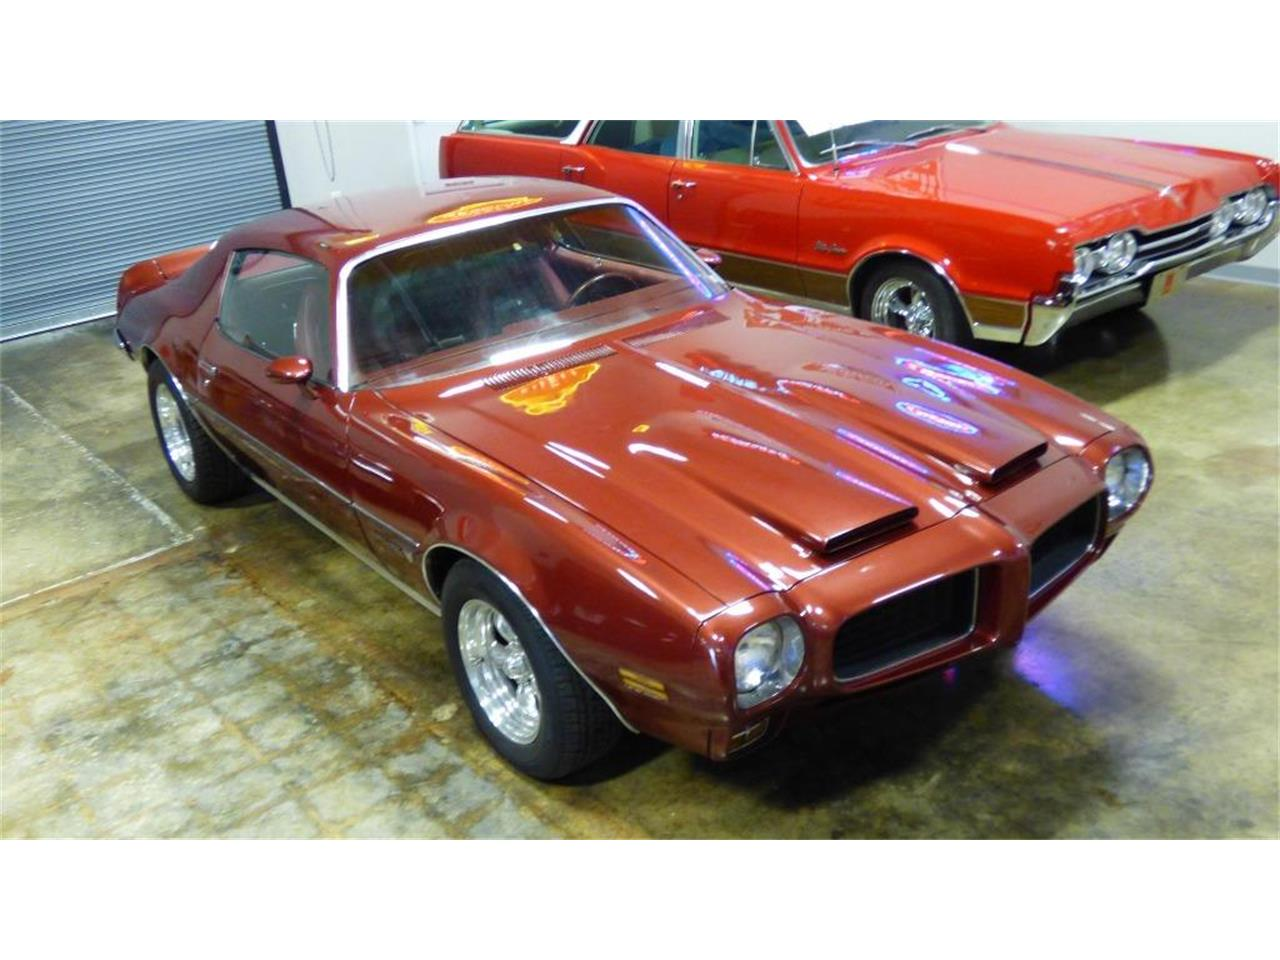 Large Picture of Classic '73 Firebird Formula - $27,995.00 Offered by Cruisers Specialty Autos - PZRG